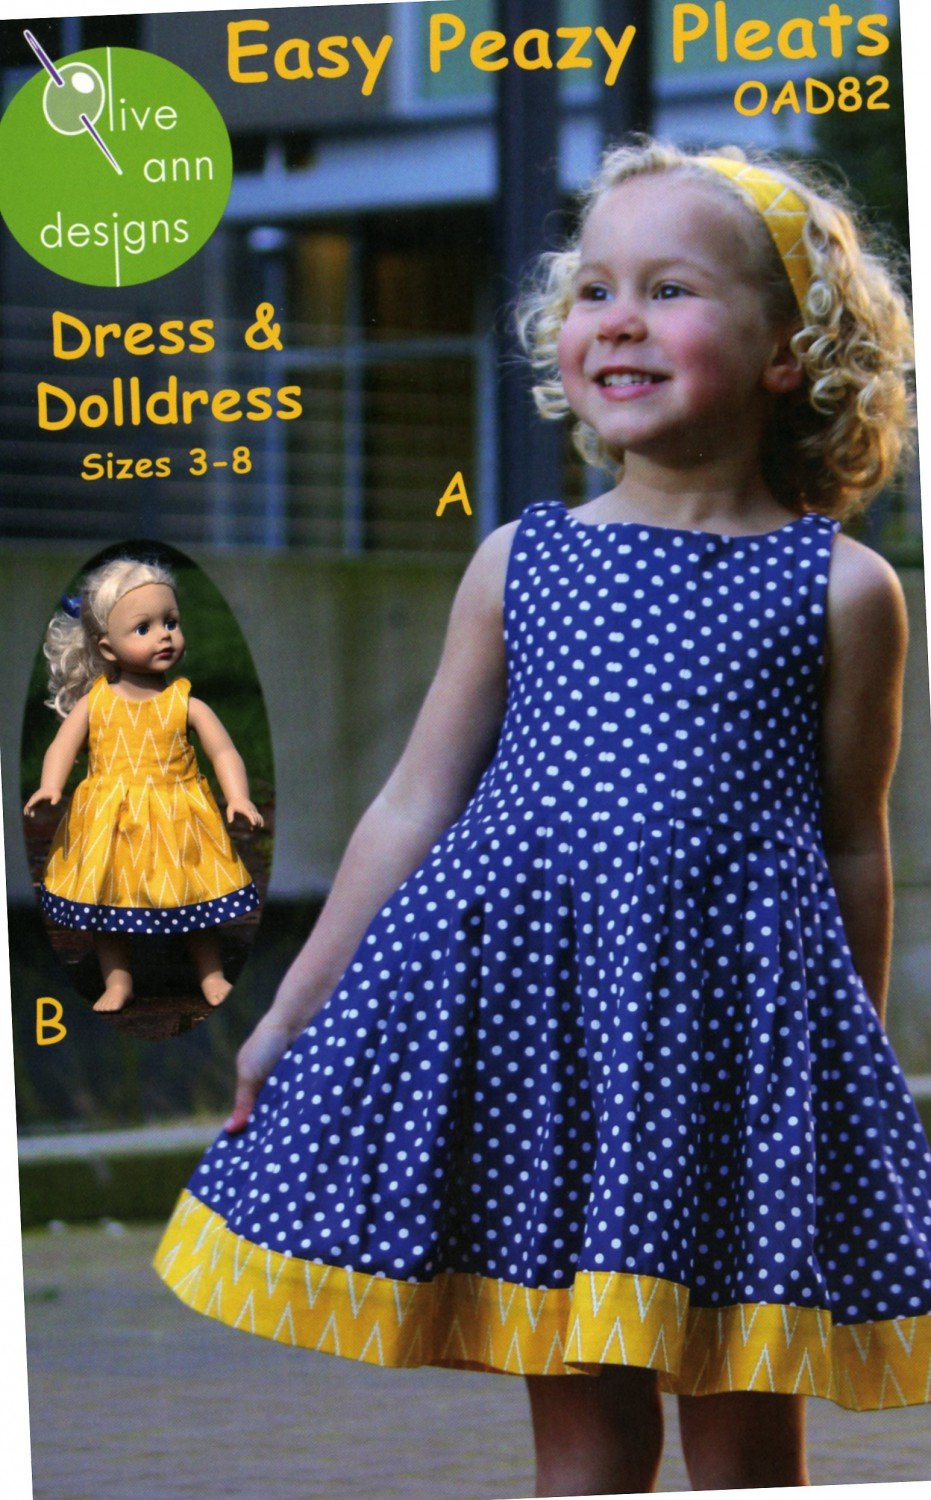 Easy Peazy Pleats Dress Pattern- Olive Ann Designs